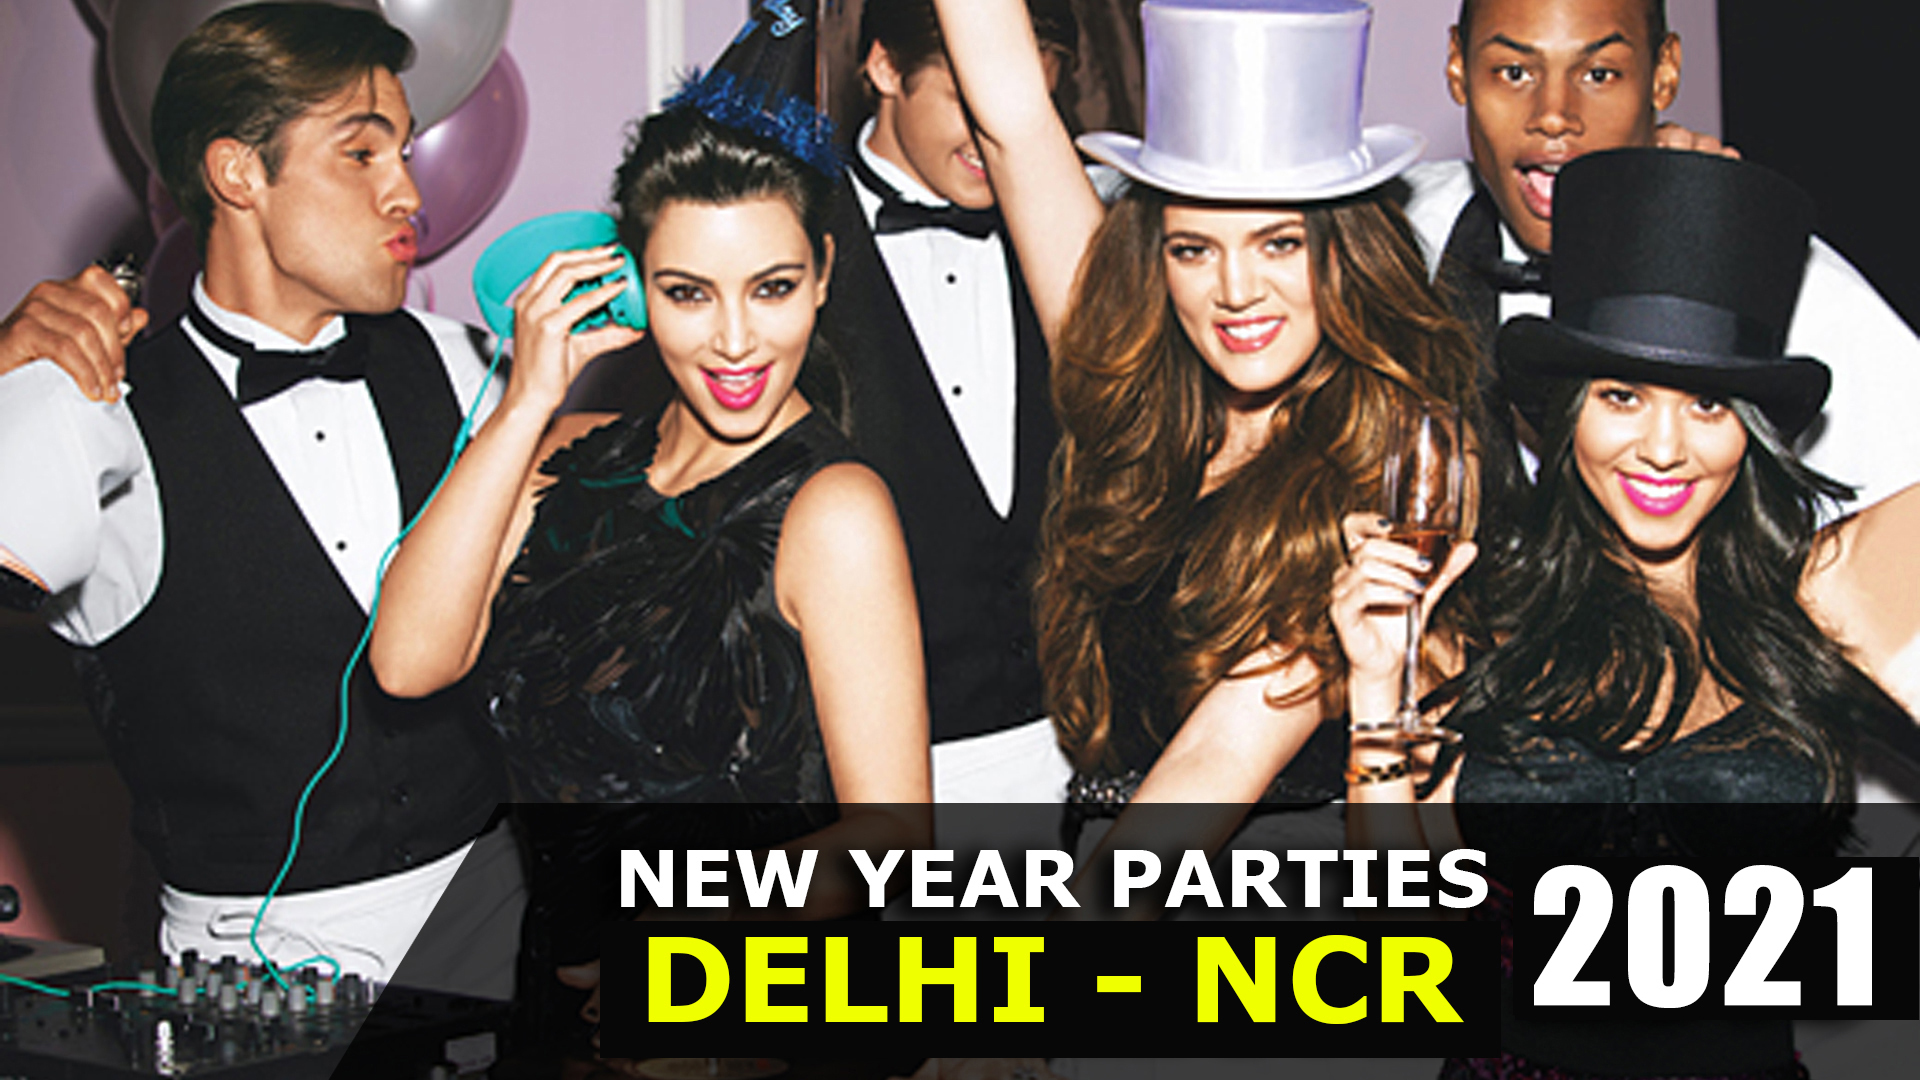 0 Handpicked New Year Events & Parties 2021 in Delhi - NCR - HighApe